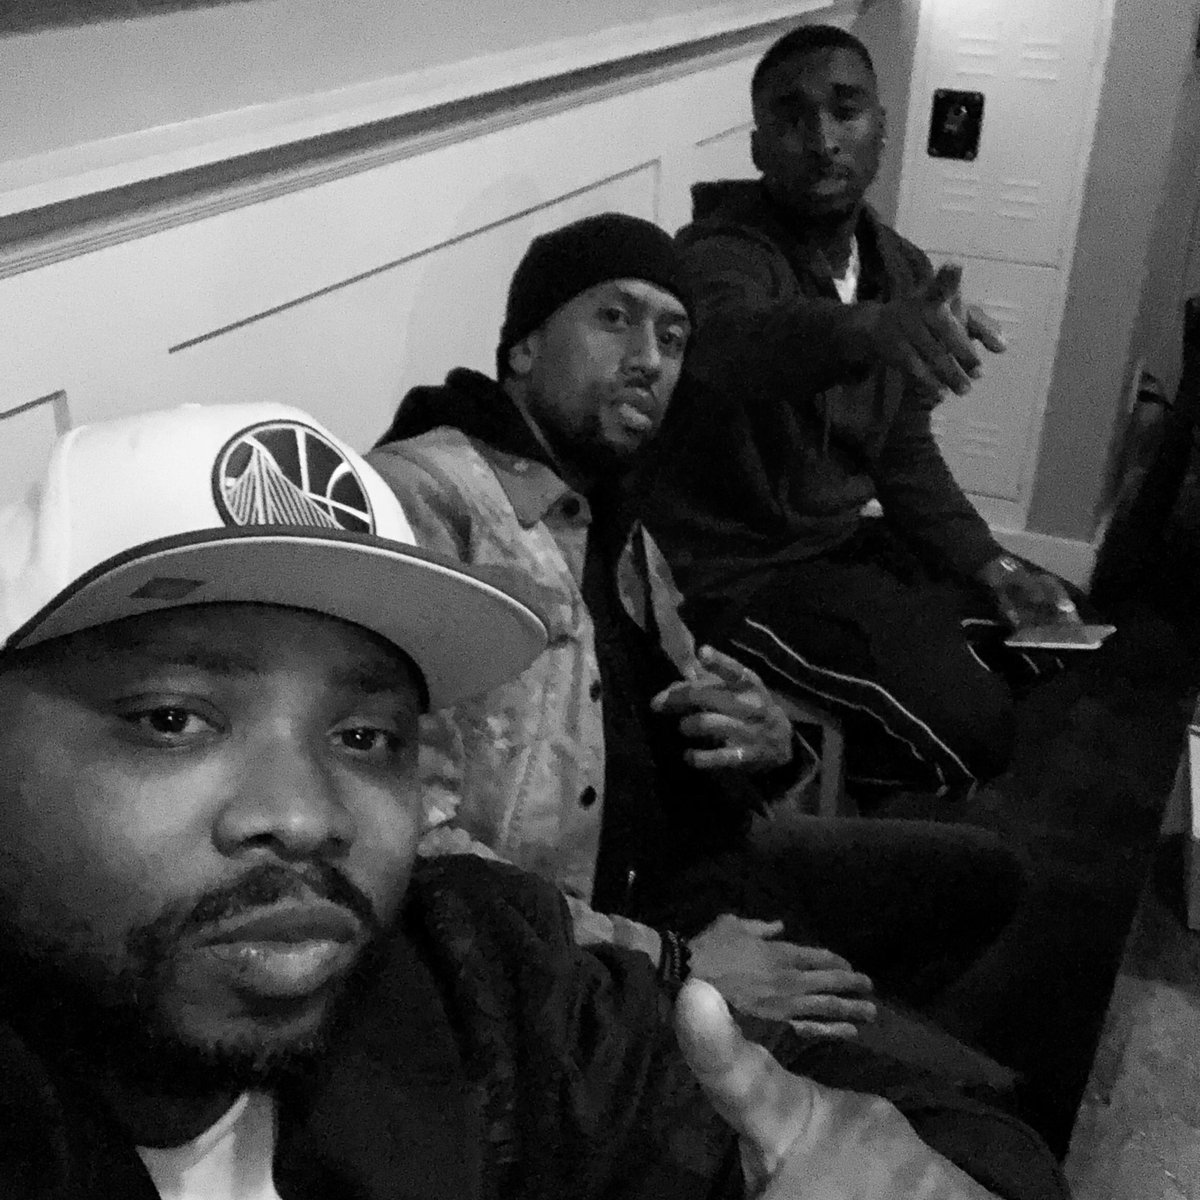 """WTF do black dudes be pointing at in pictures together. Are they giving directions? Did someone pull out the strap and they like """"aye nigga watch out"""" what y'all think we pointing at? @AFFIONCROCKETT @Dshippjr"""